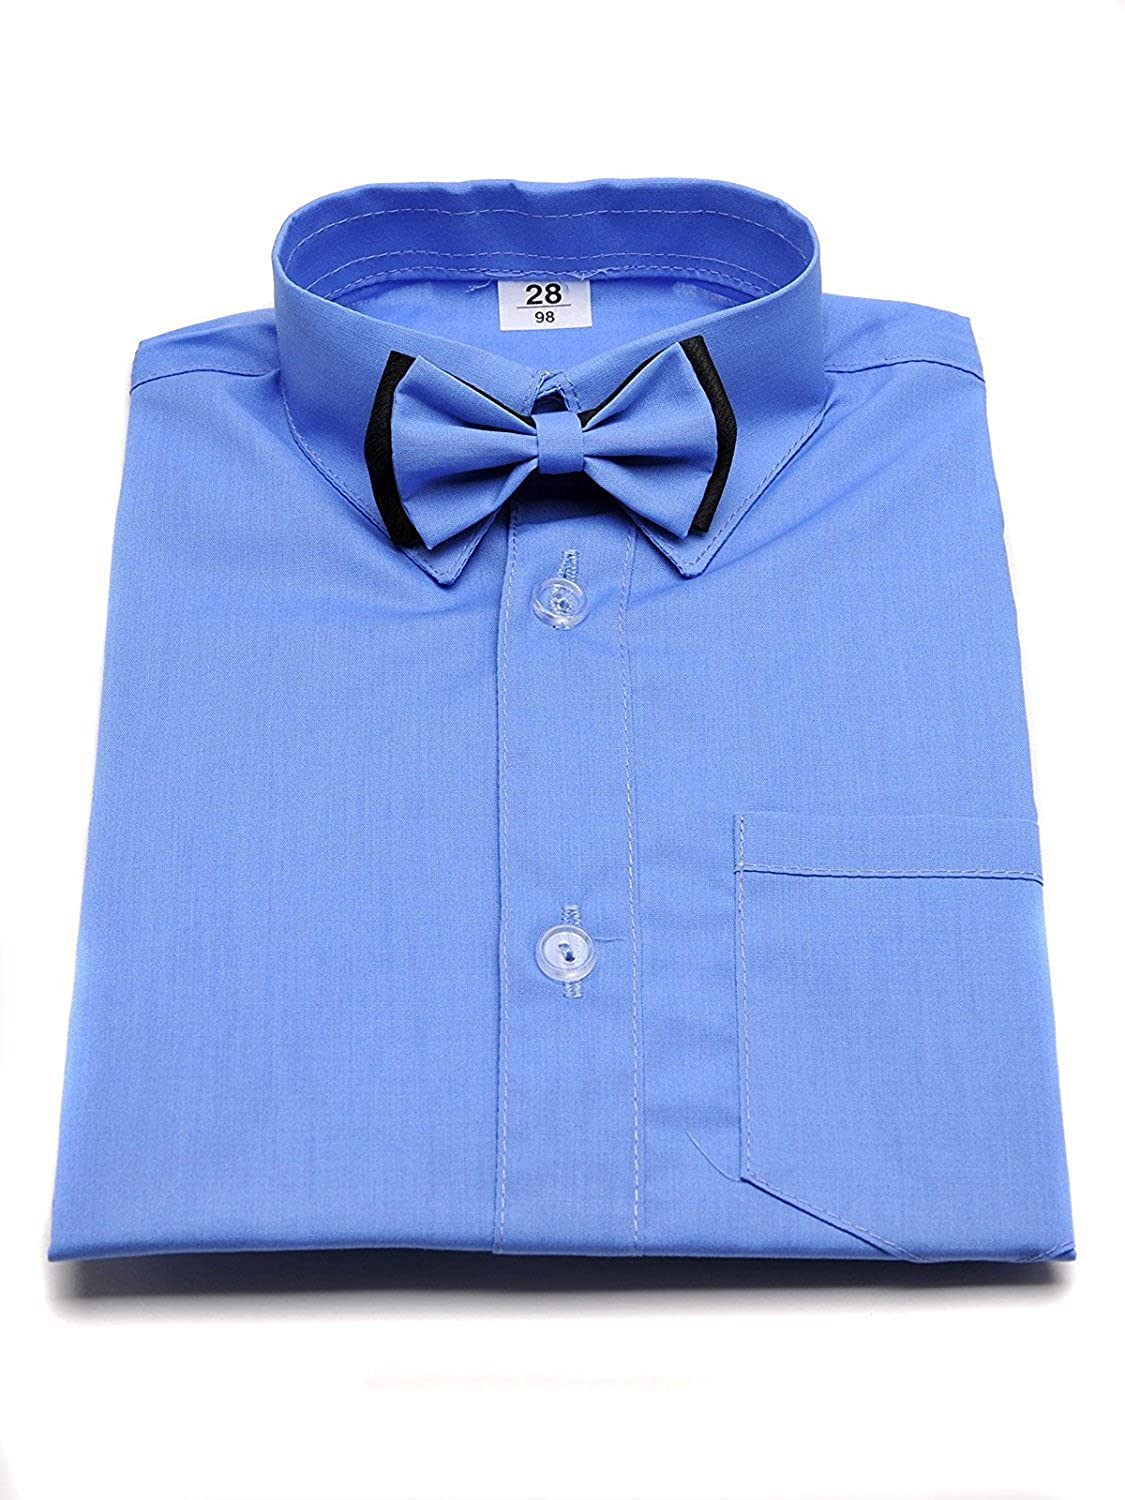 Boy's Formal Shirt Blue with Bow Tie and Long Sleeves. Wedding Christening Smart Party School